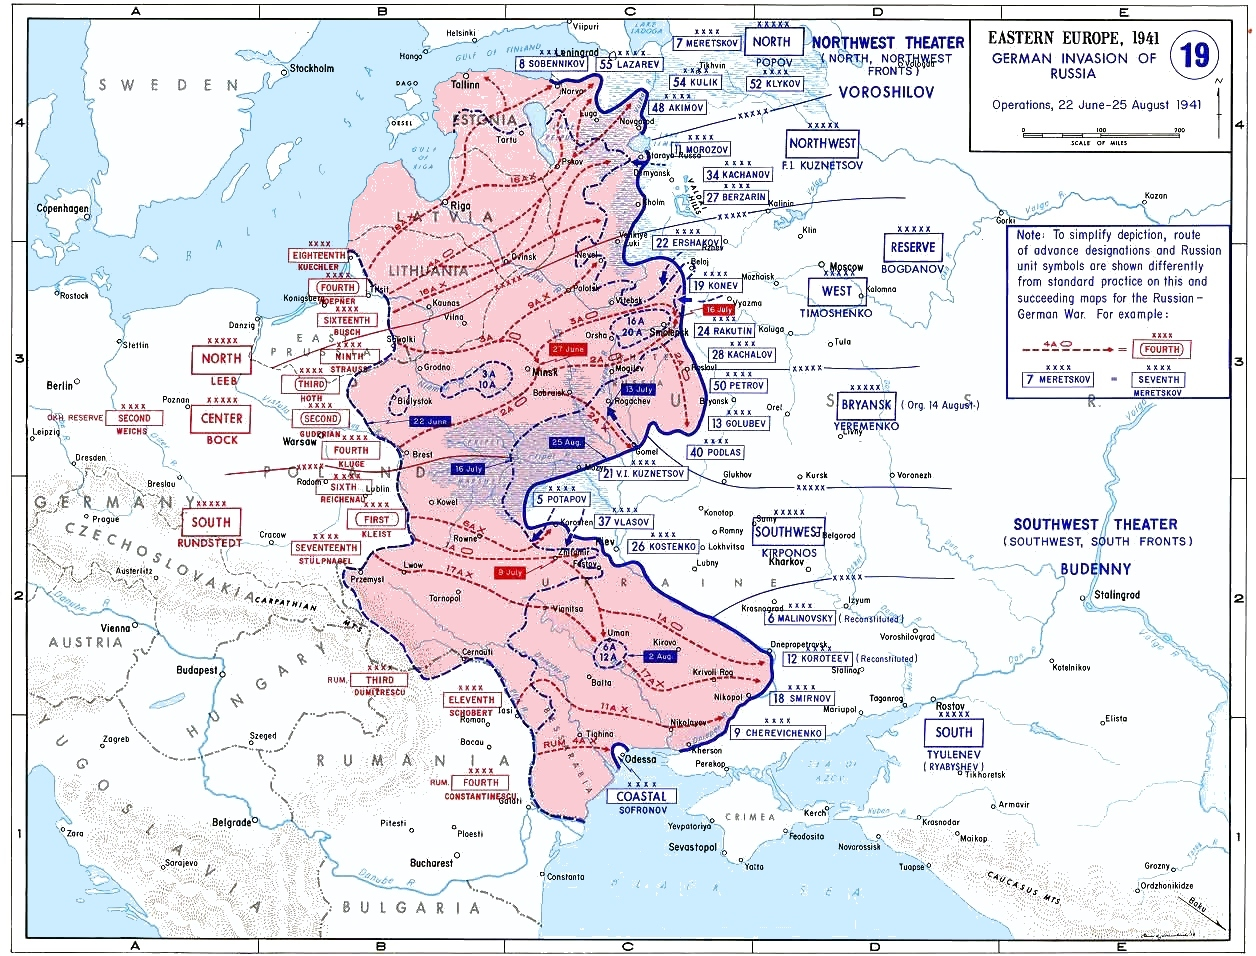 How Nazi Germany Could Have Crushed Russia During World War II